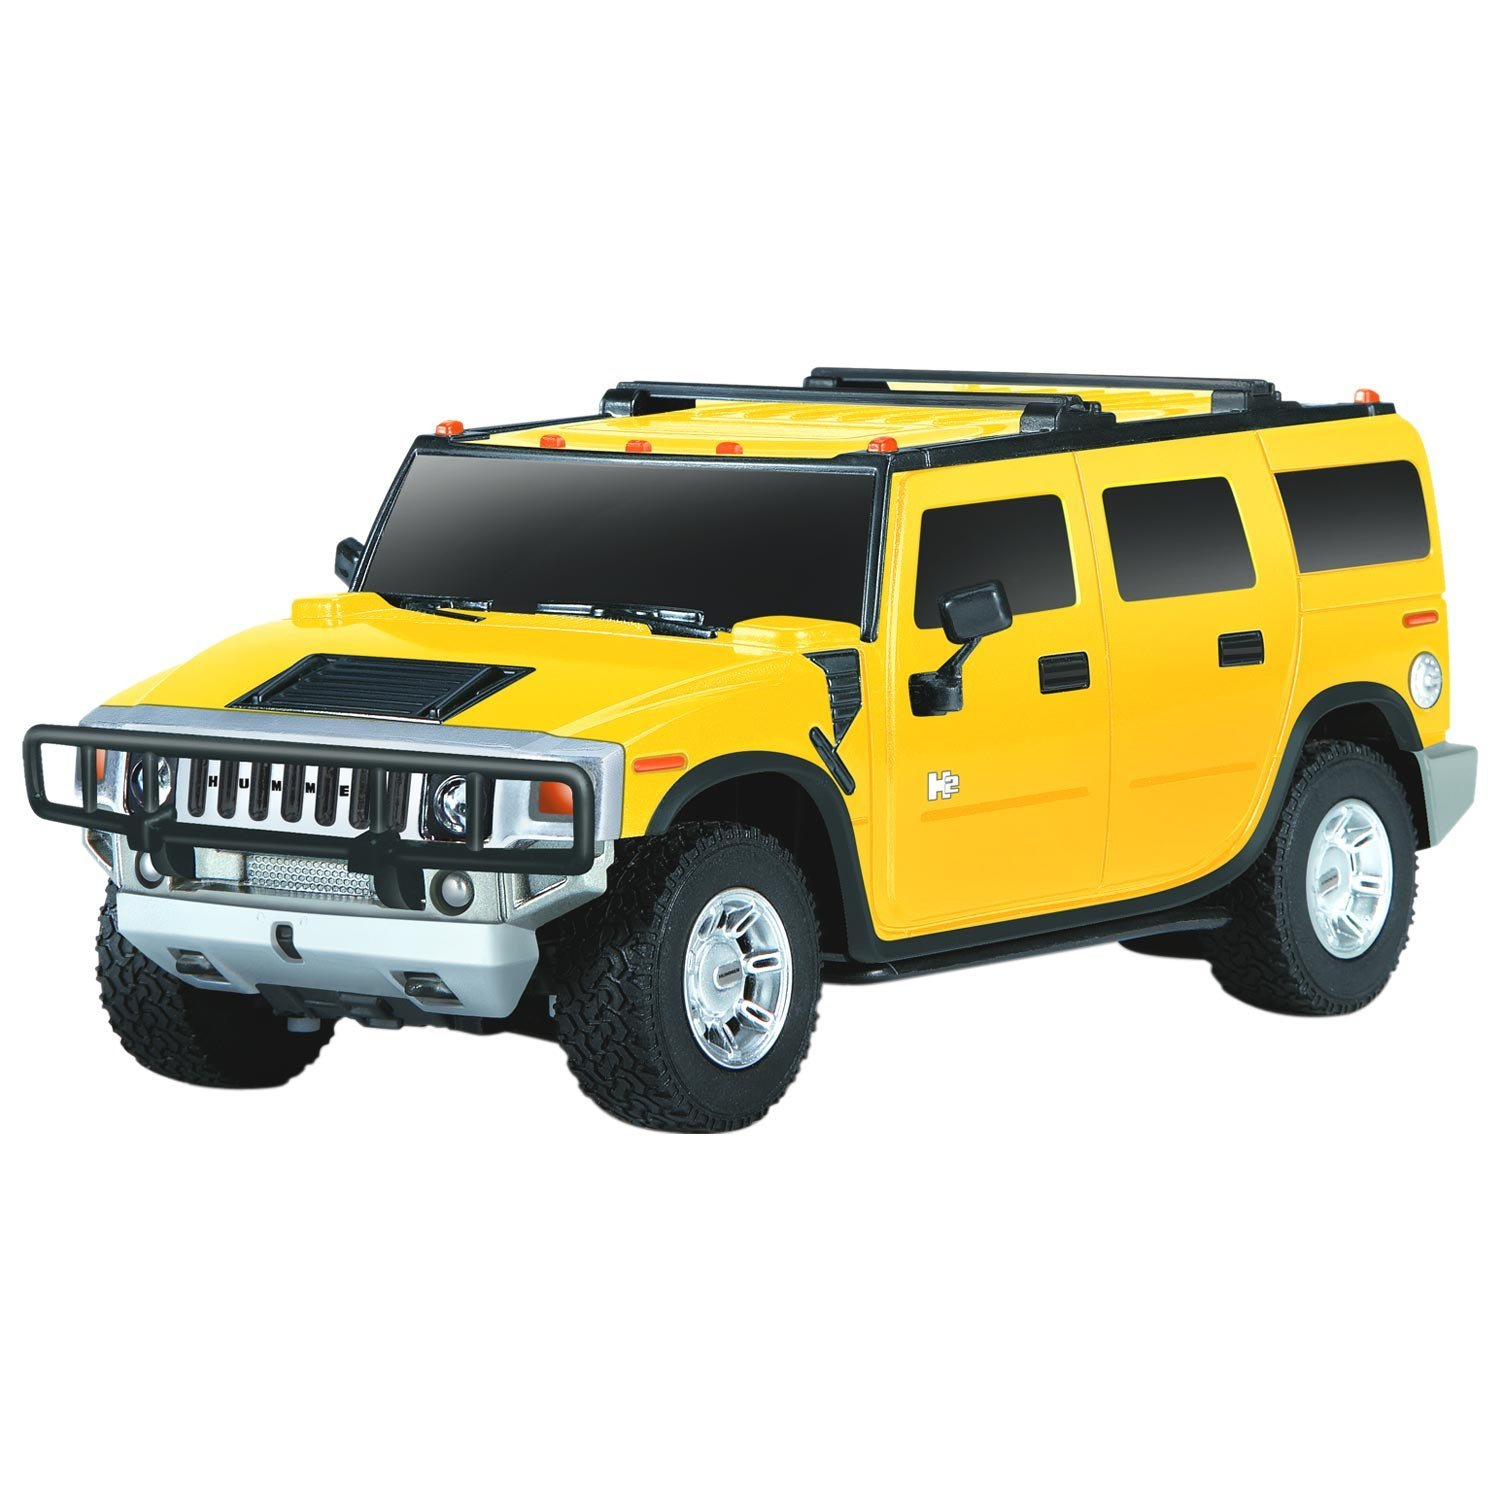 Buy Rastar 1:27 Hummer H2 Suv R/C Online at Low Prices in India ...